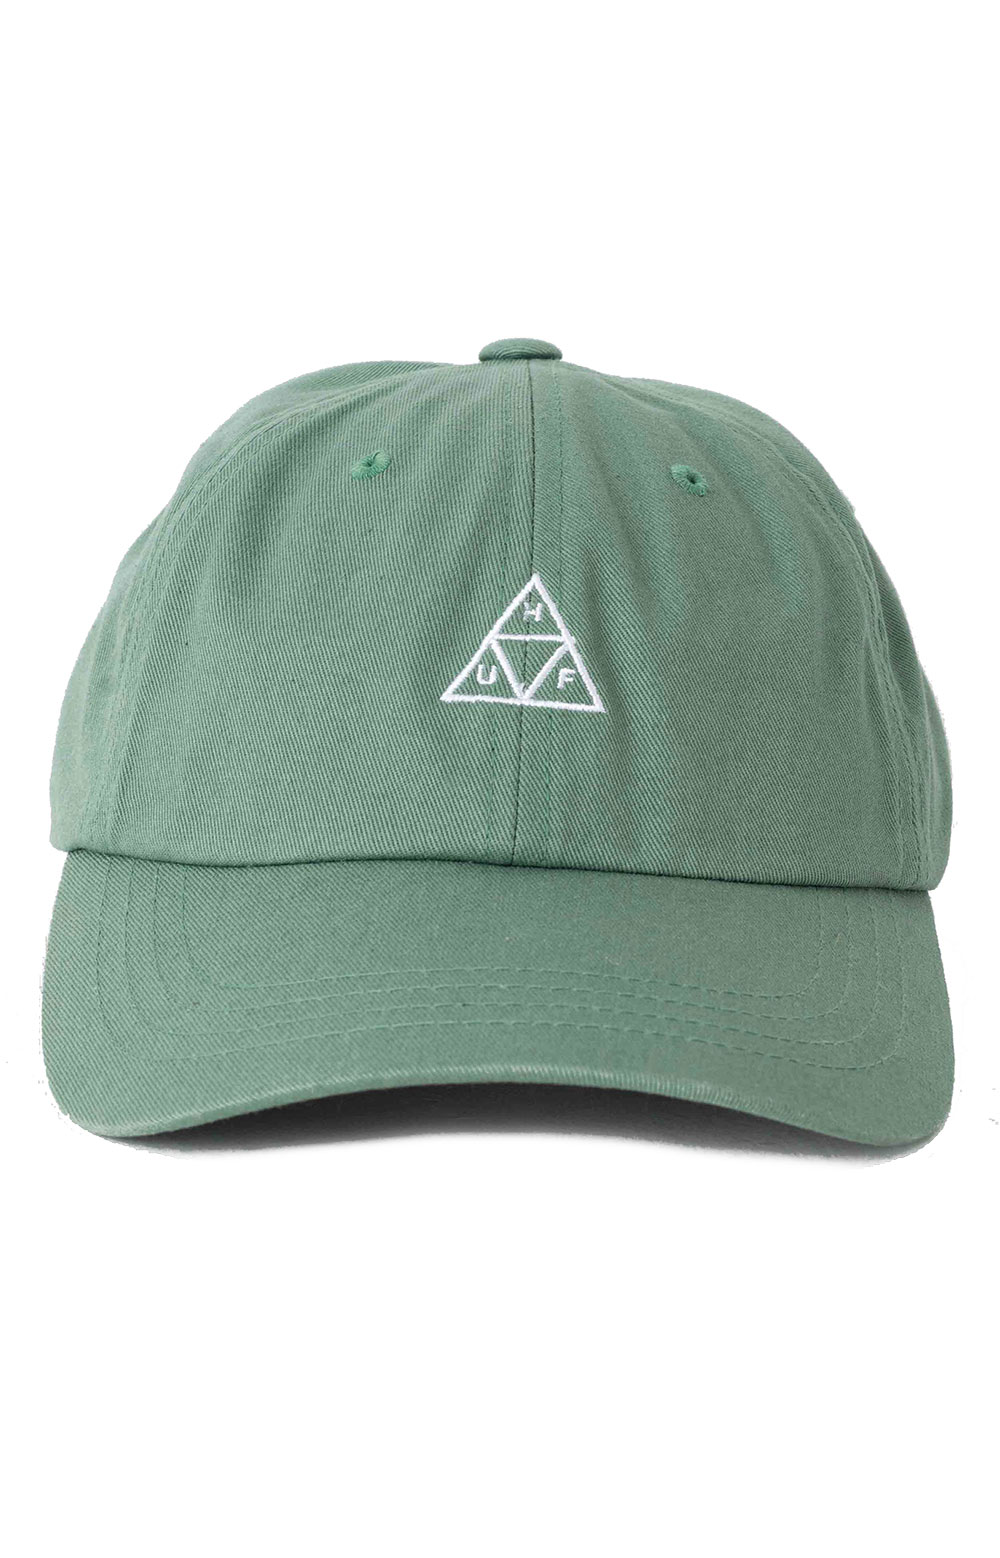 Essentials TT CV 6 Panel Hat - Beryl Green  2